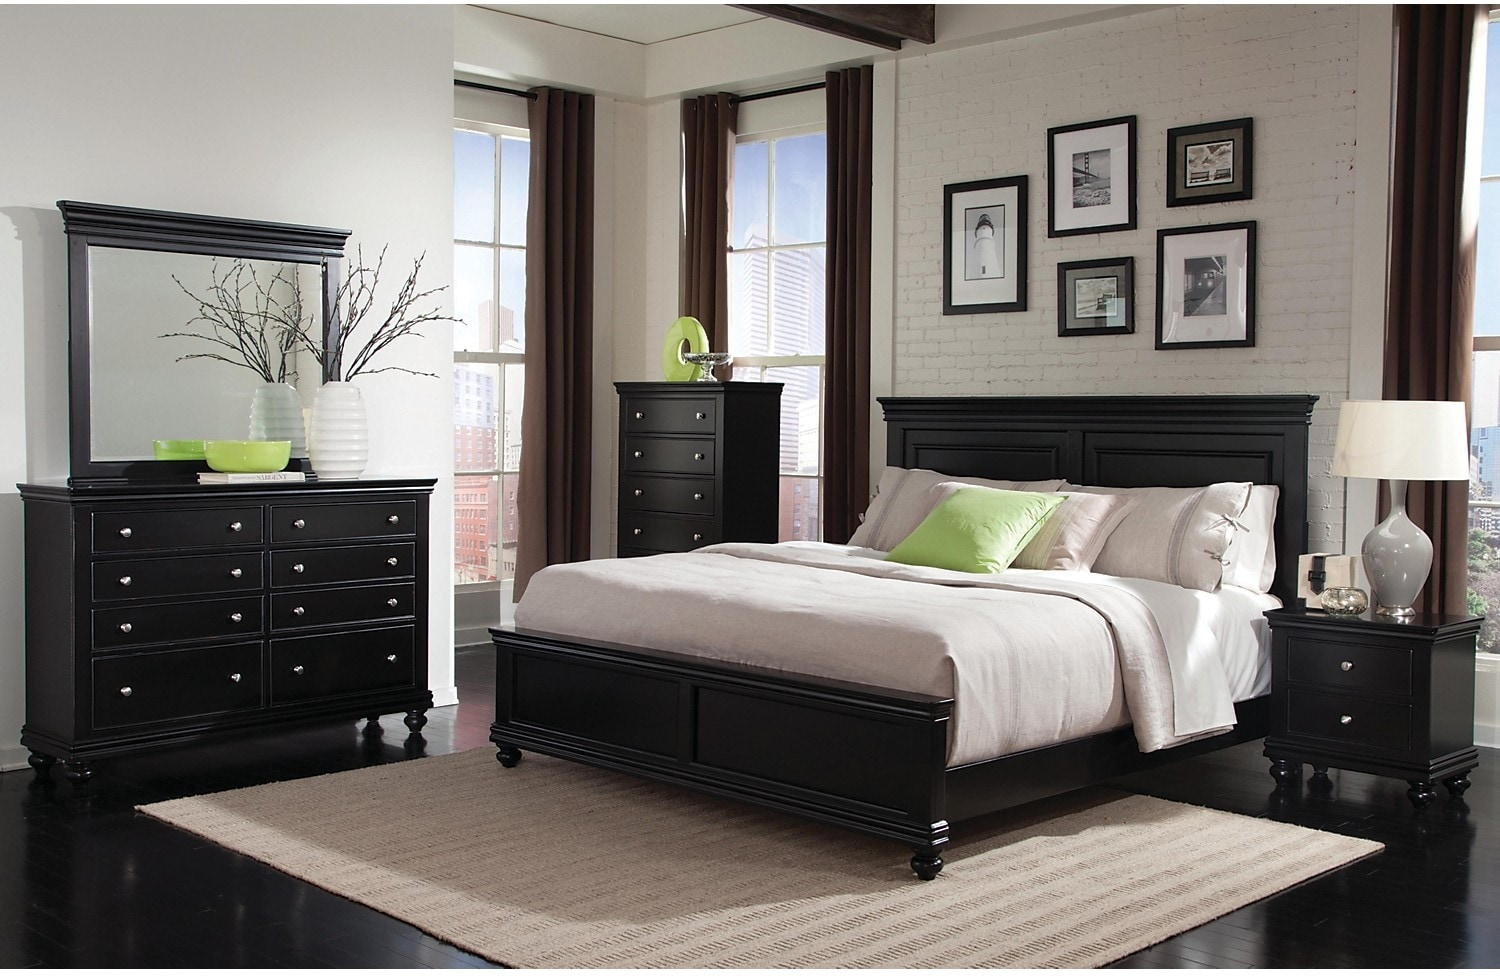 bridgeport 5 piece queen bedroom set black the brick cute bedroom ideas classical decorations versus modern design